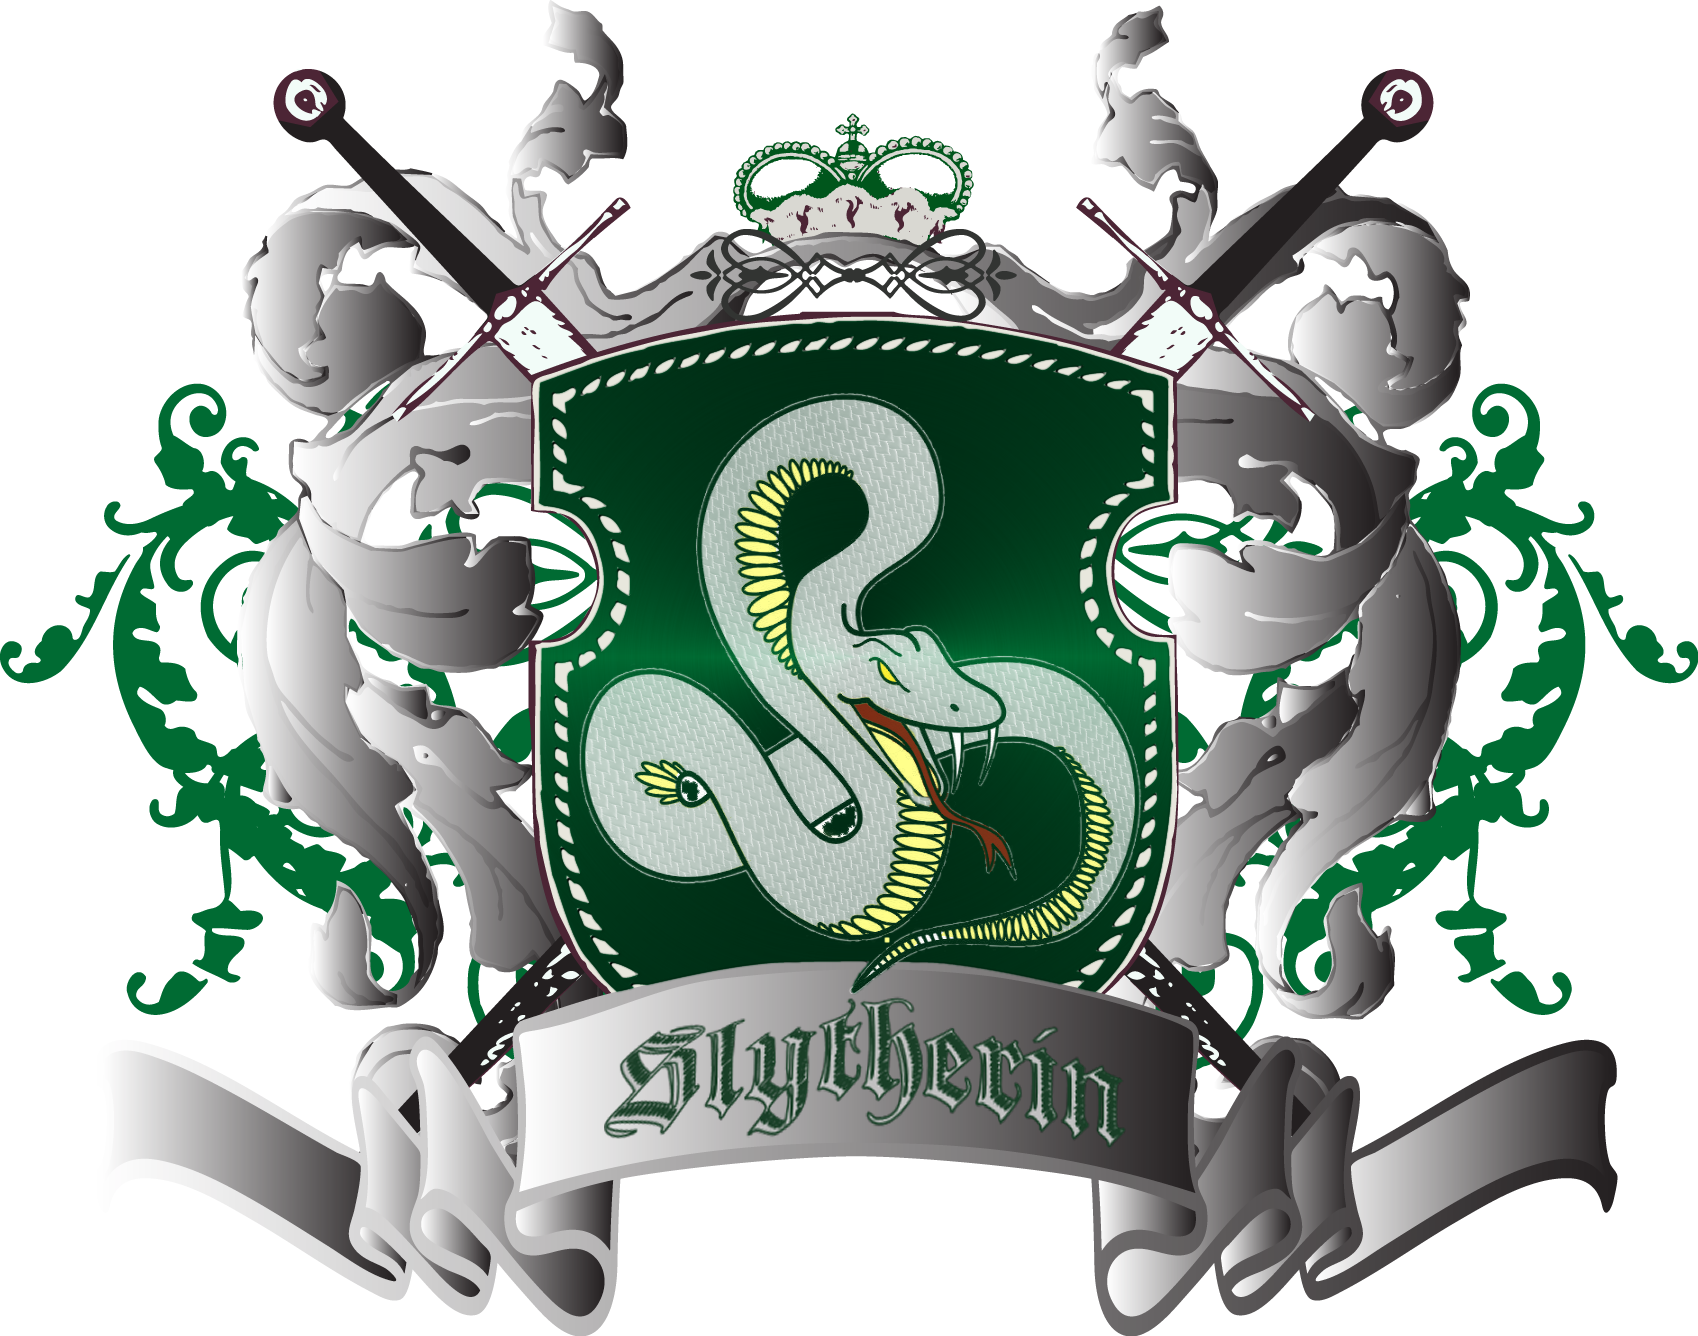 Slytherin drawing banner. House ideas google search